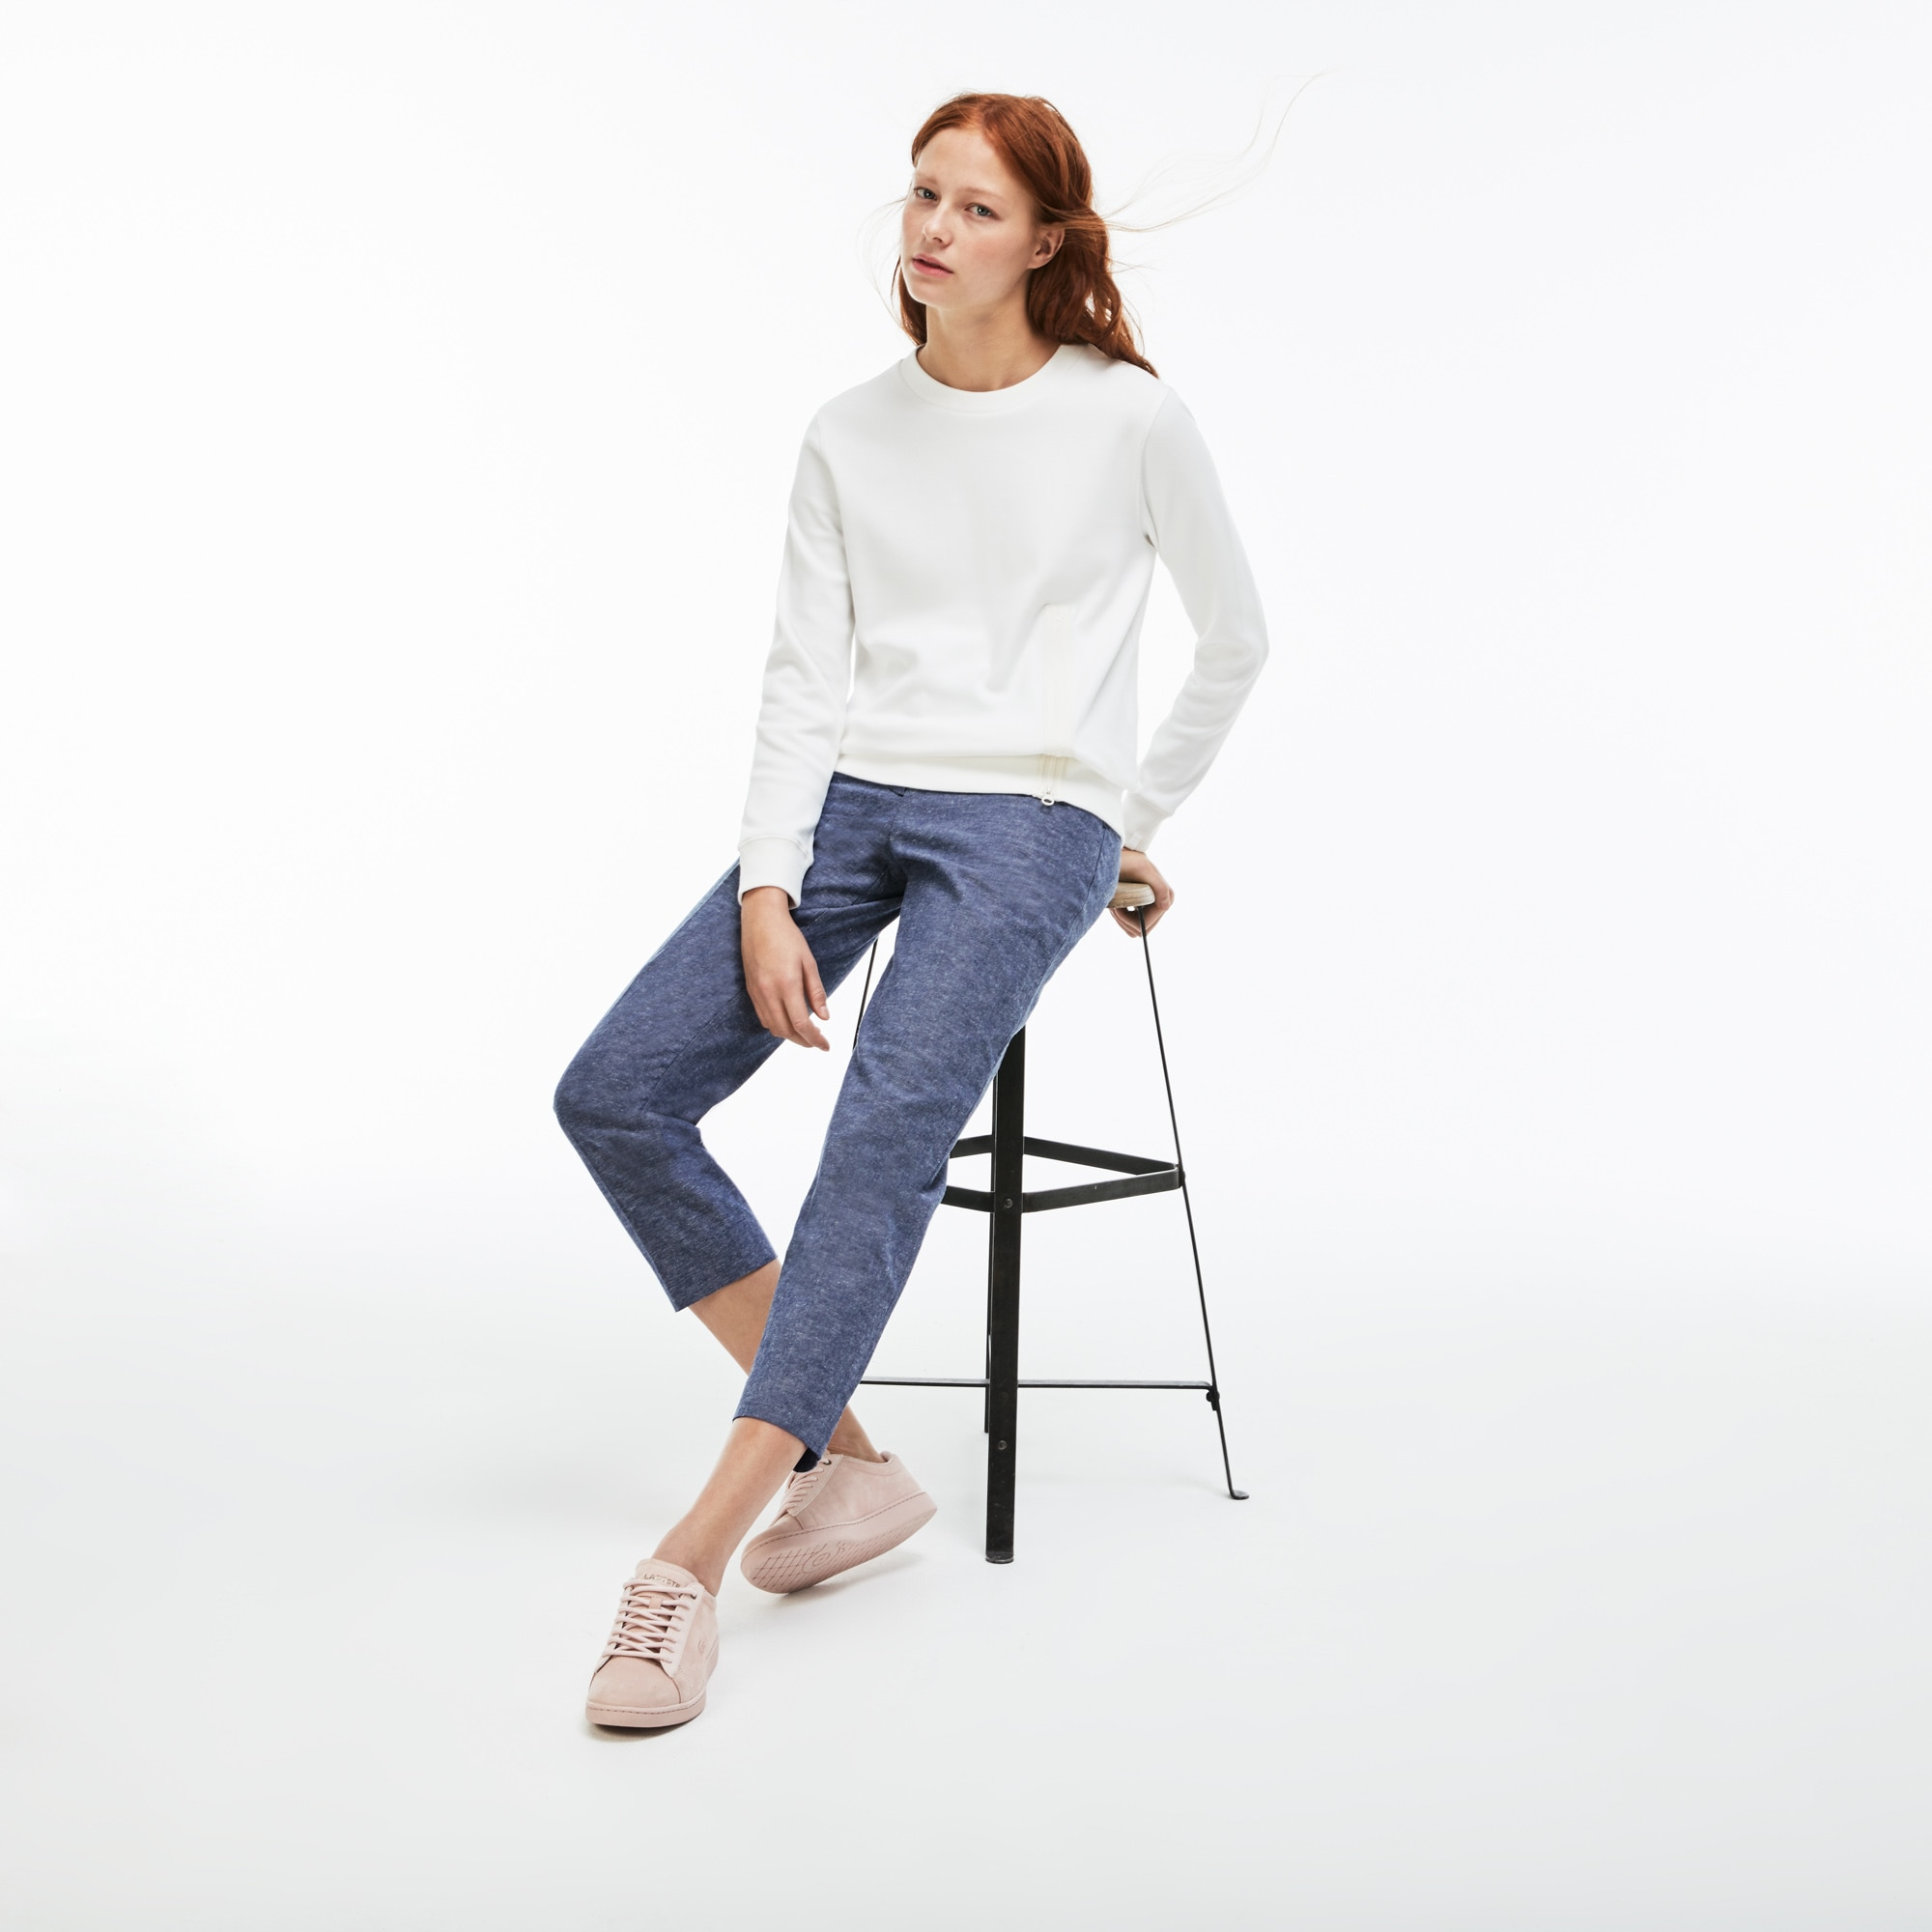 Lacoste LIVE-plooibroek dames chambray